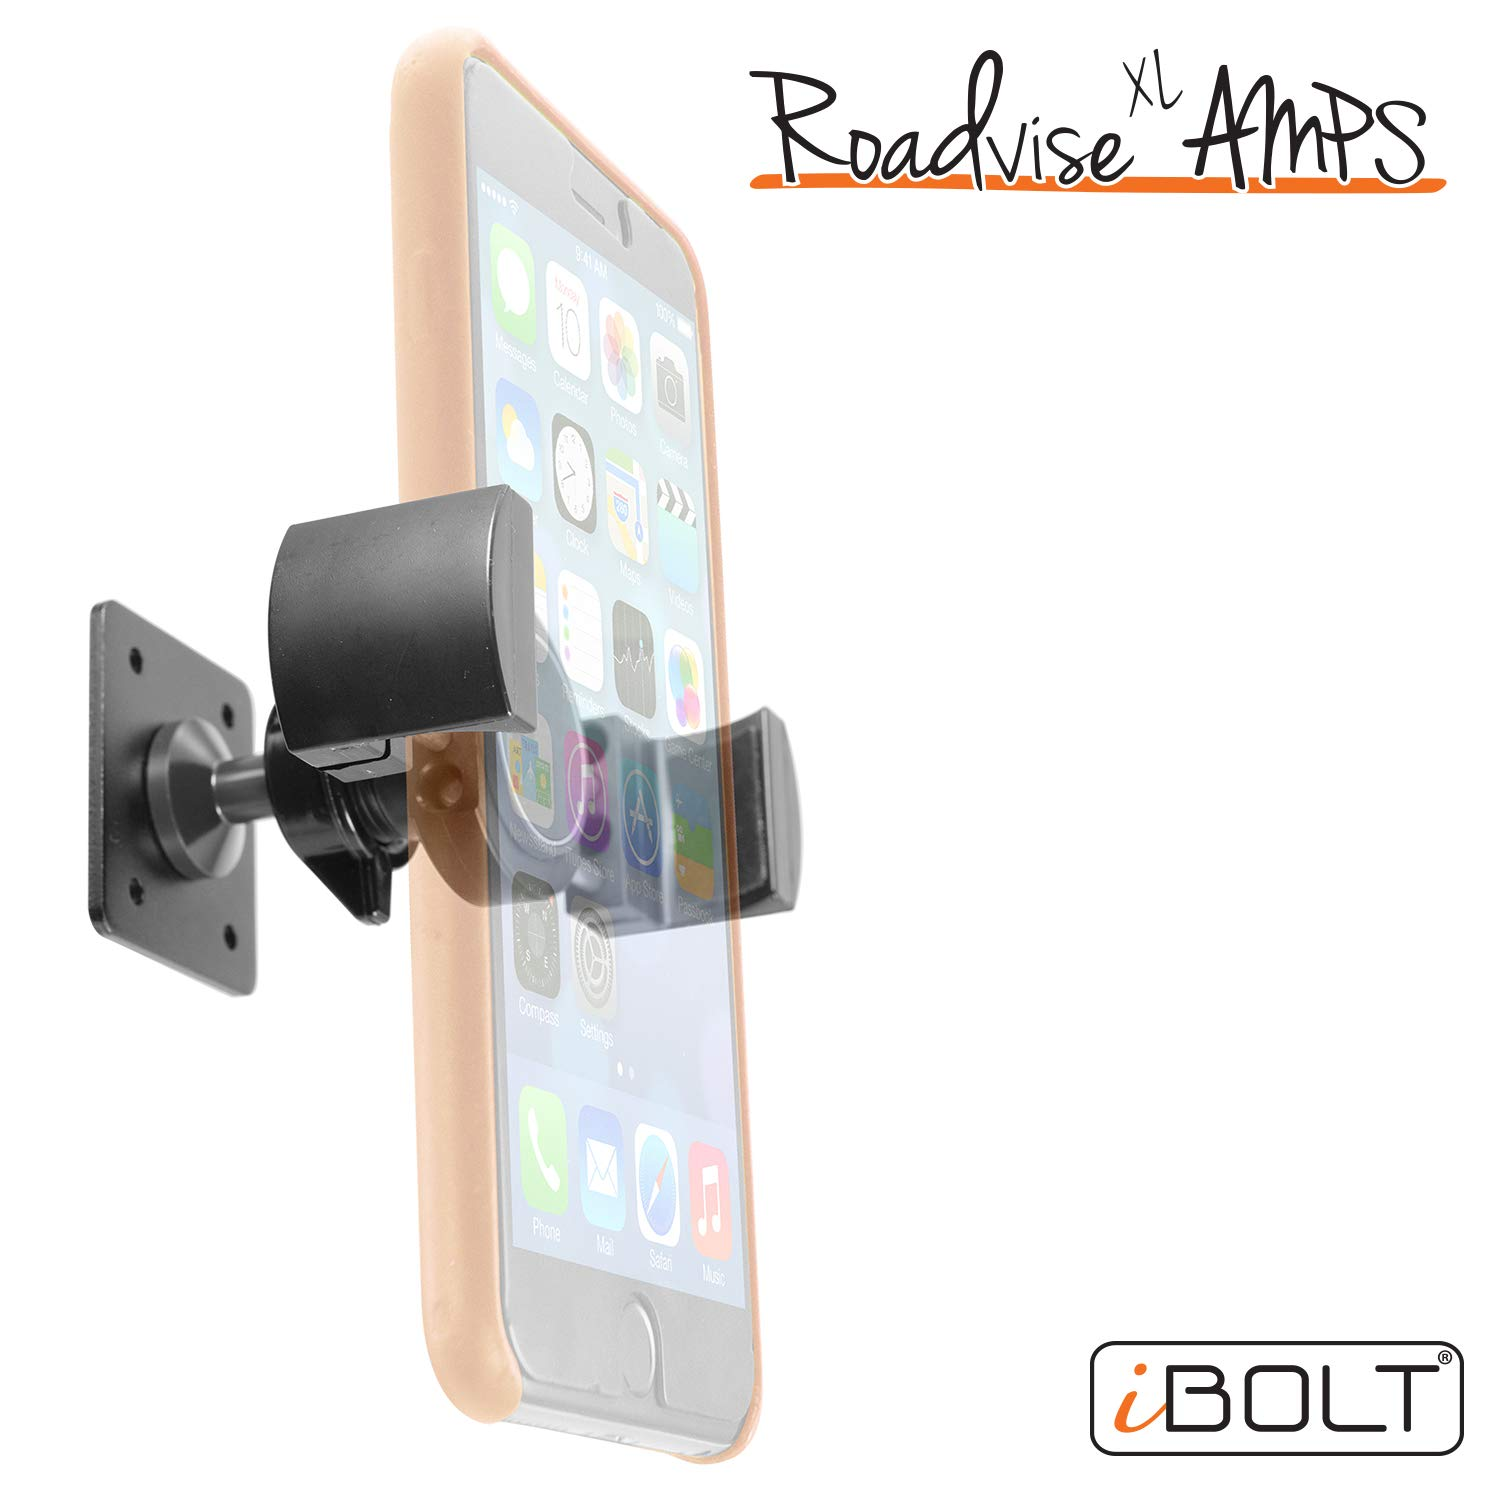 iBOLT Roadvise XL AMPS Heavy Duty Metal Drill Base AMPS Mount for Smartphones, Midsize Tablets, Nintendo Switch from 2.75 inches to 5 inches Wide- Great for Trucks, Wall mounting, Commercial Vehicles